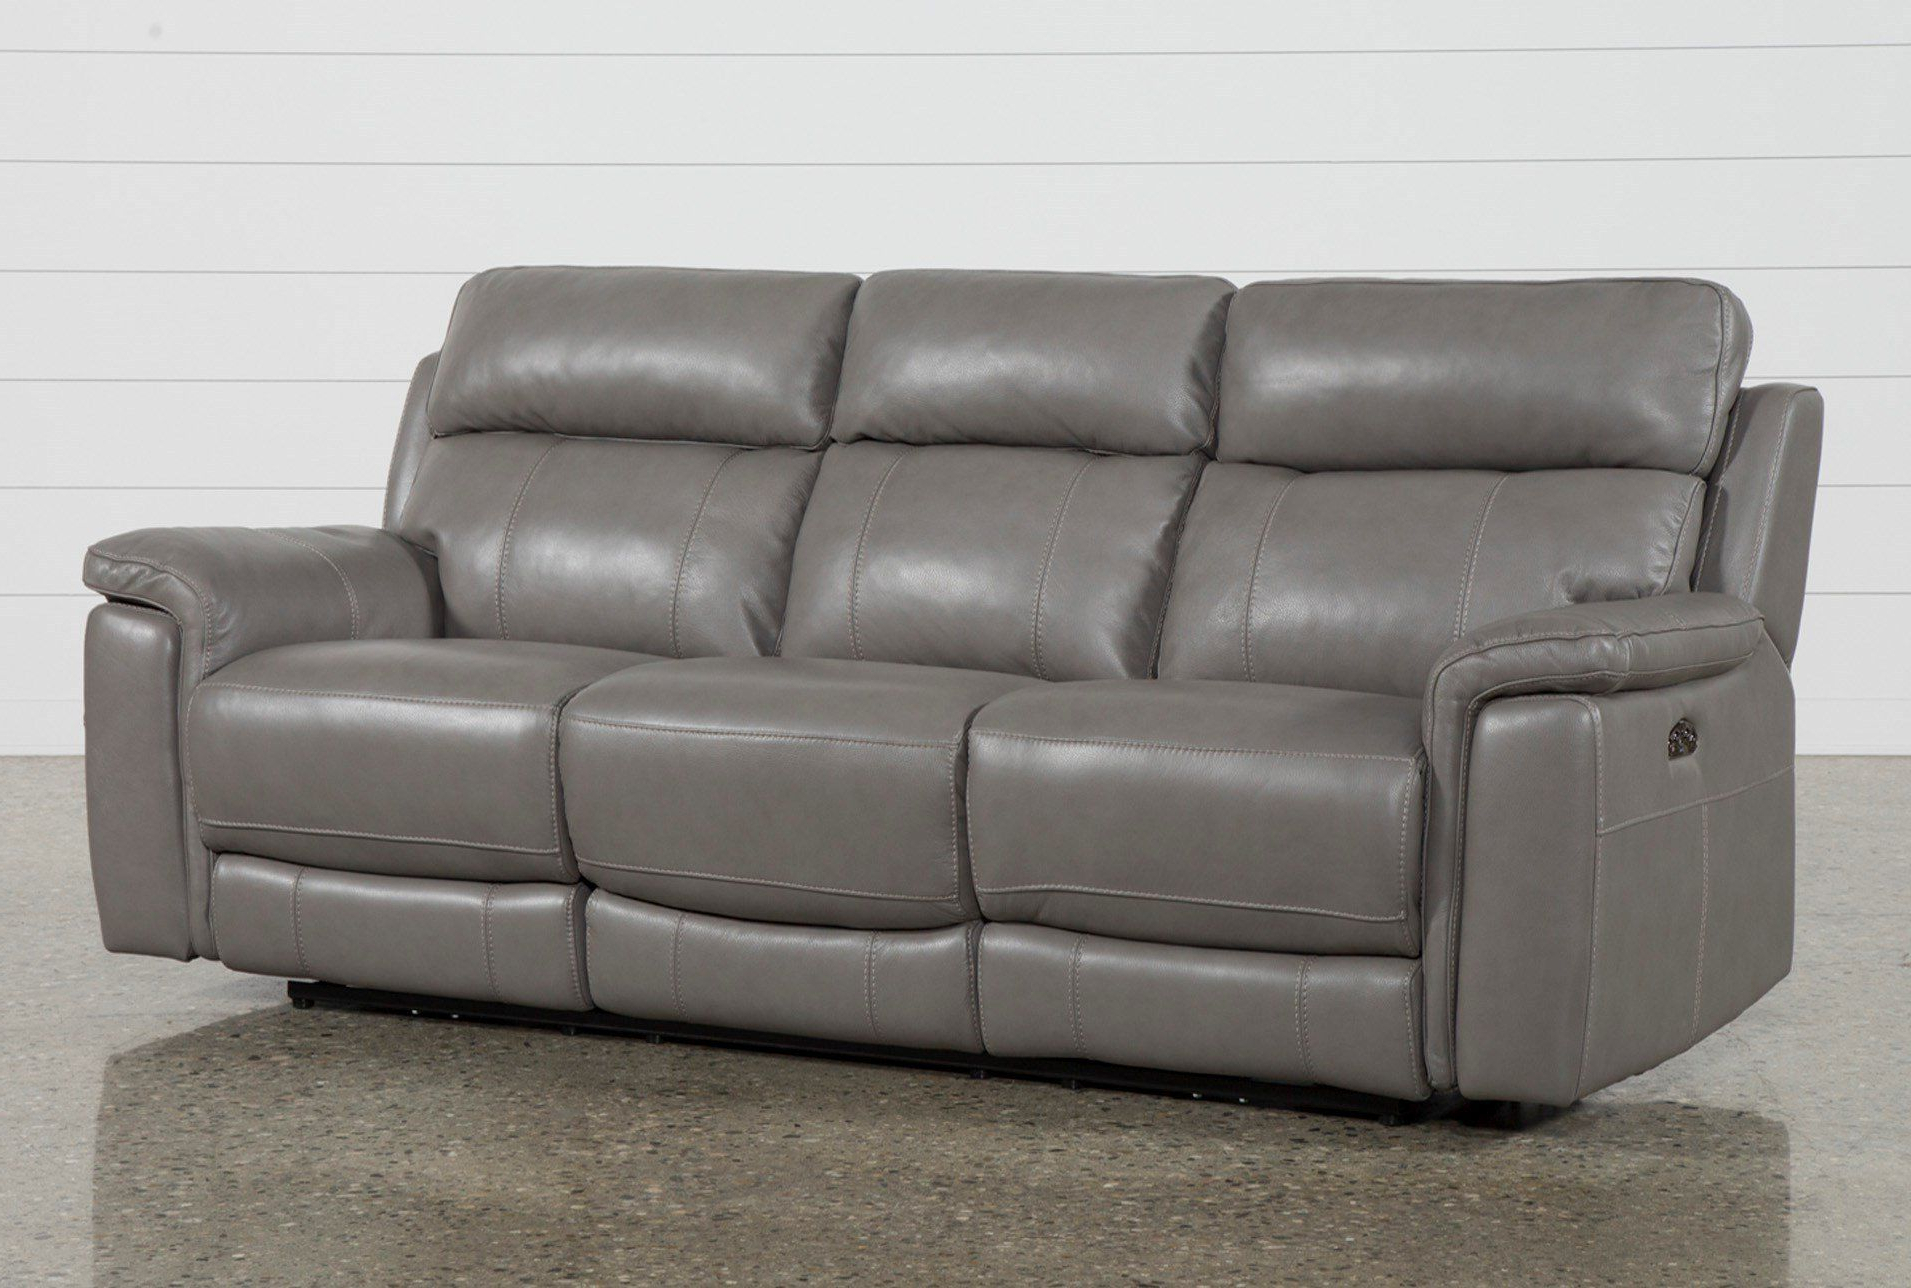 """Dino Grey Leather 91"""" Power Reclining Sofa With Power For Well Known Pacifica Gray Power Reclining Sofas (View 8 of 20)"""